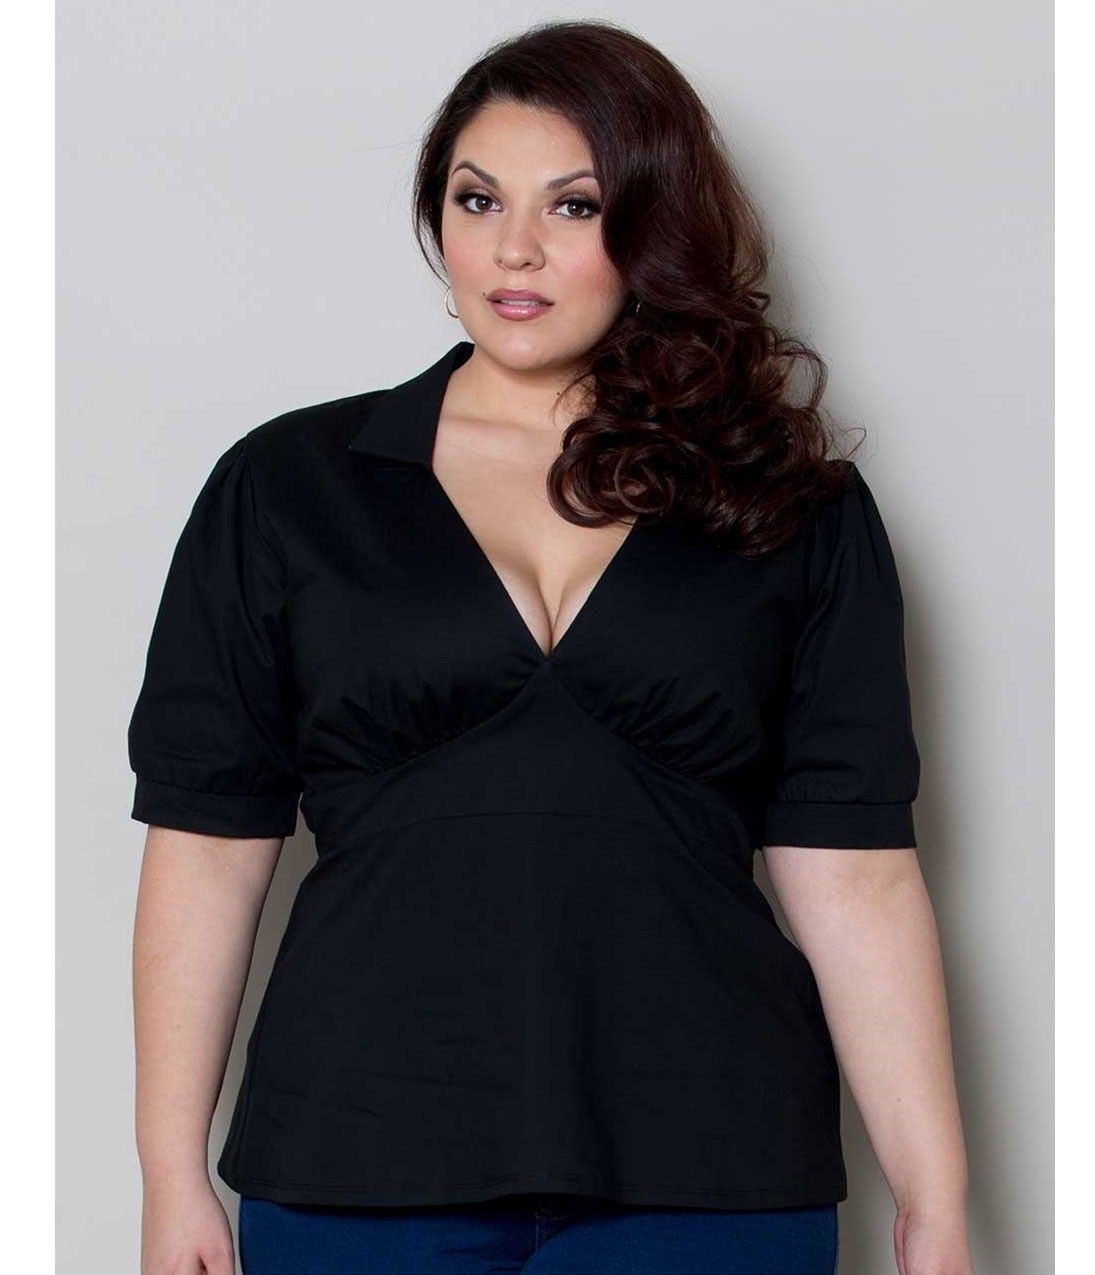 Plus Size Retro Style Black Heidi Cotton Top | fashions I like ...